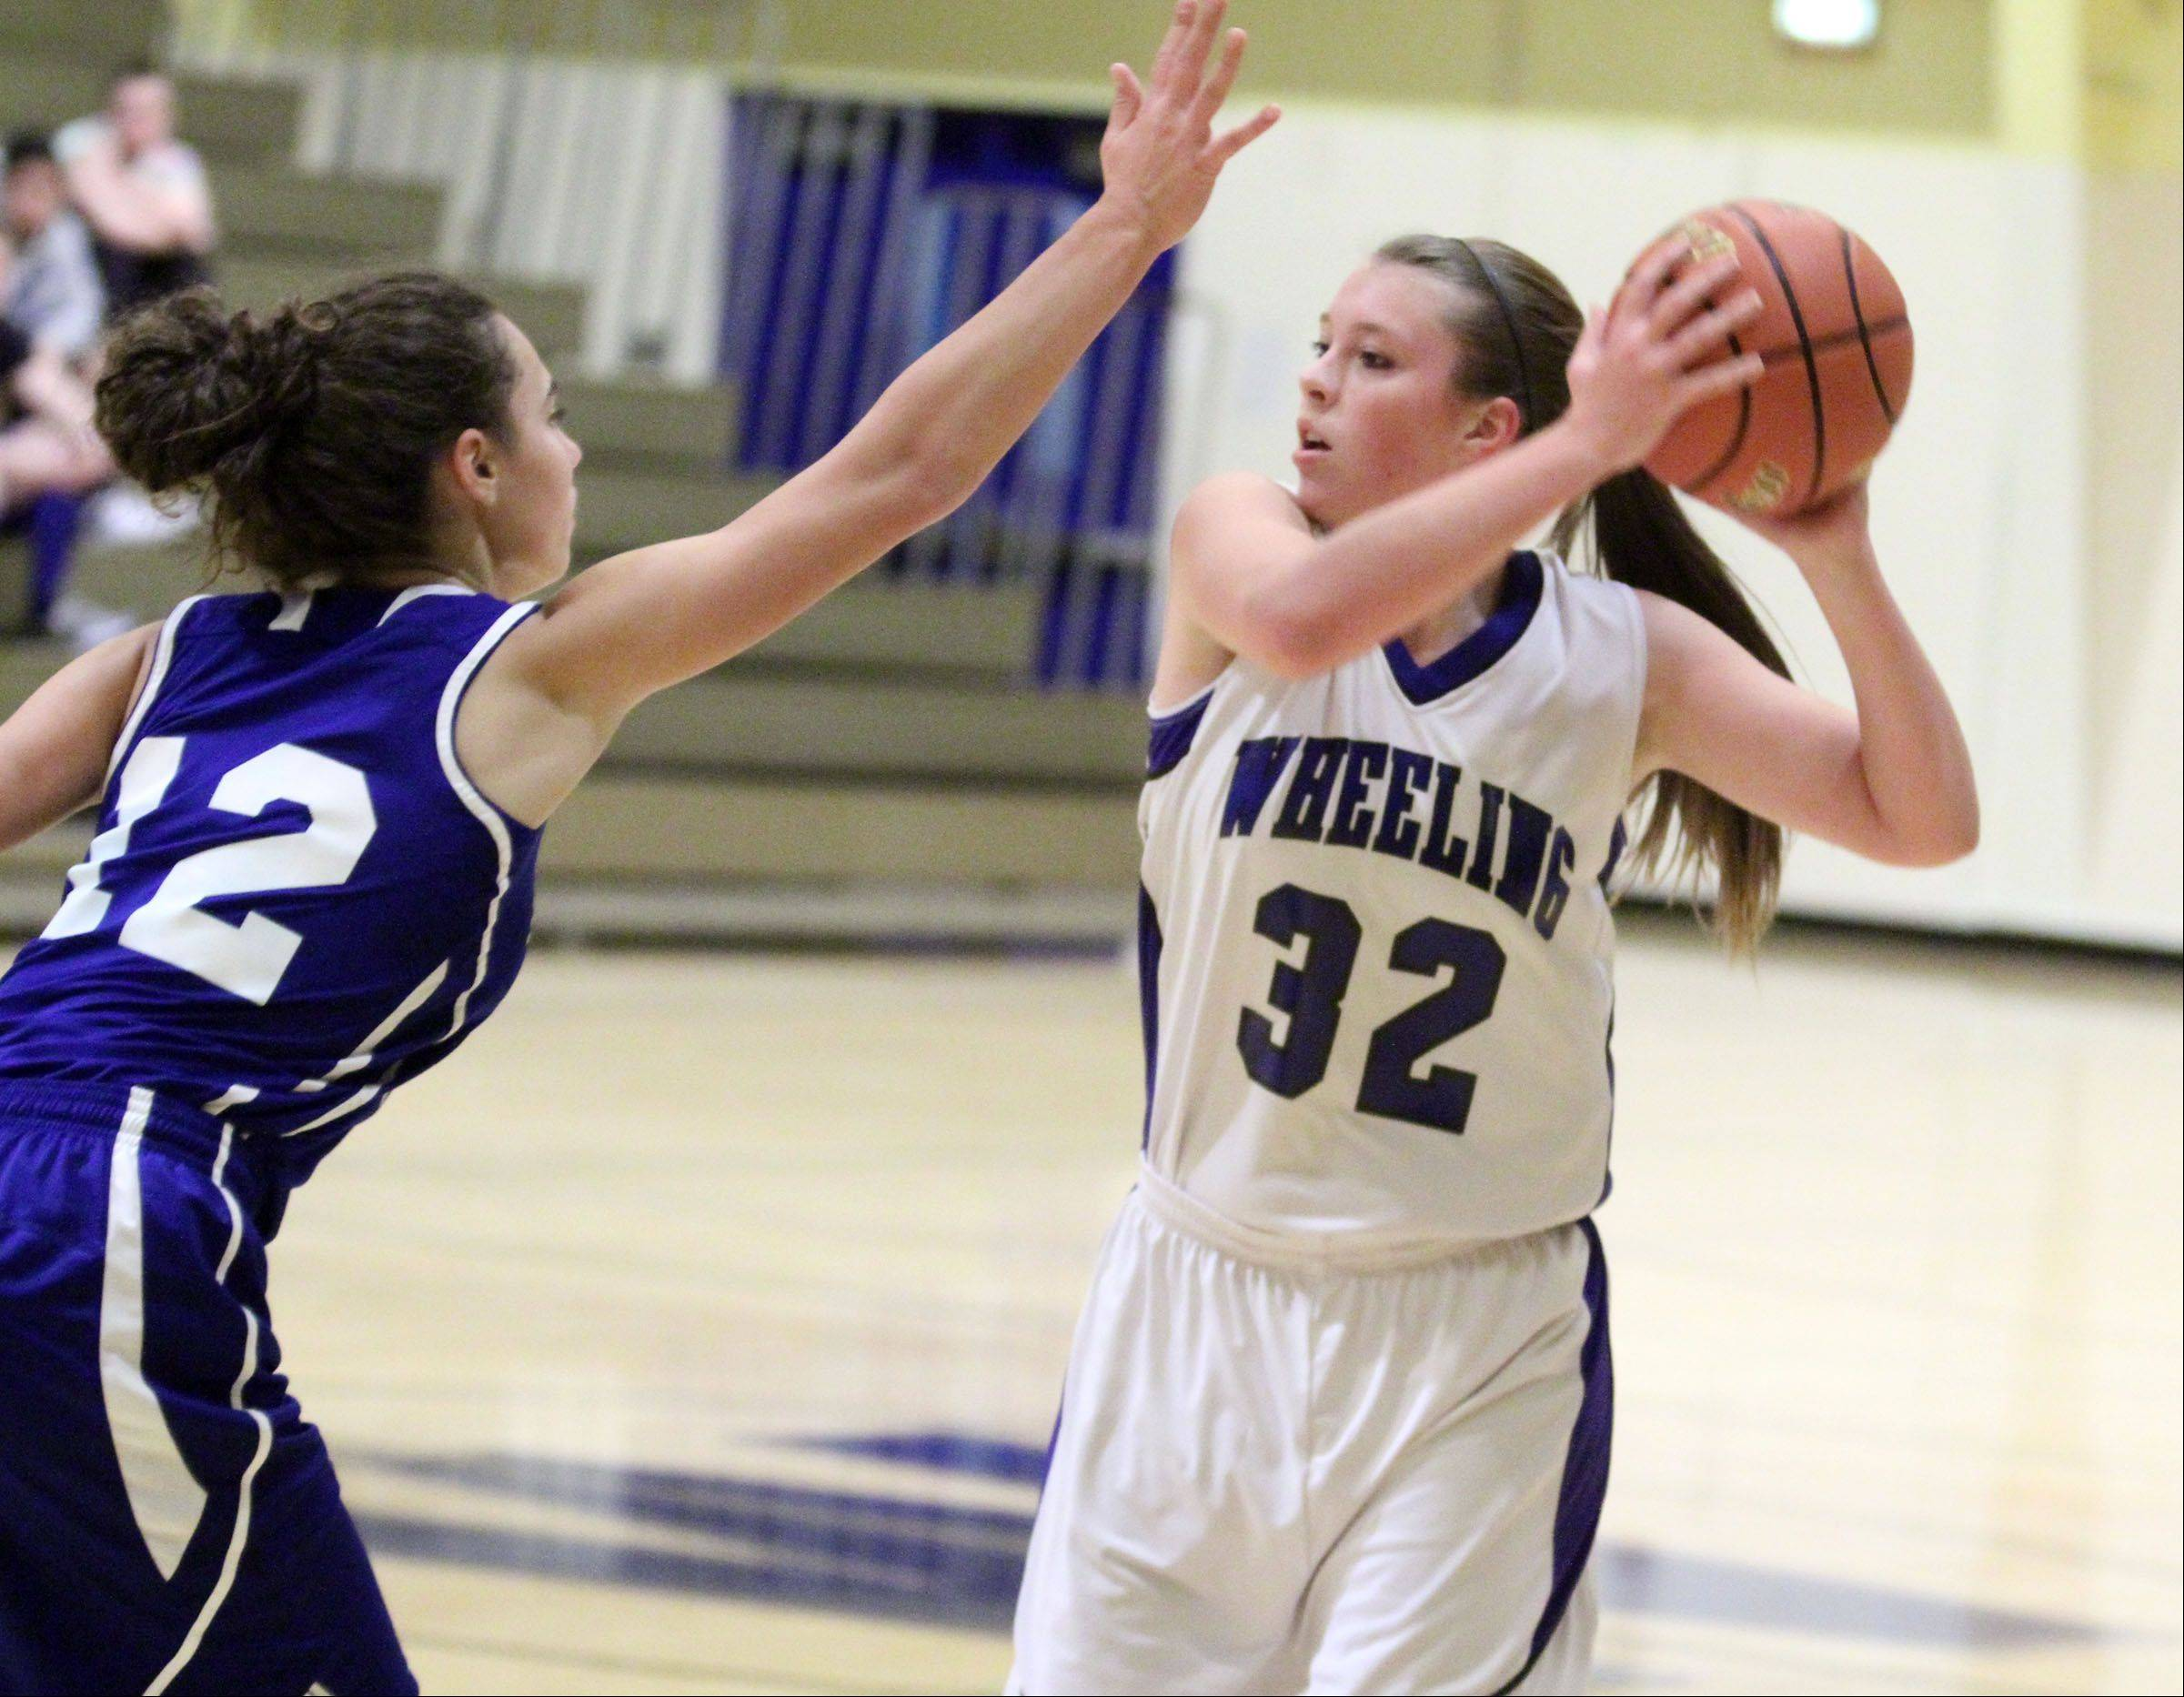 Images: Wheeling vs. Highland Park, girls basketball